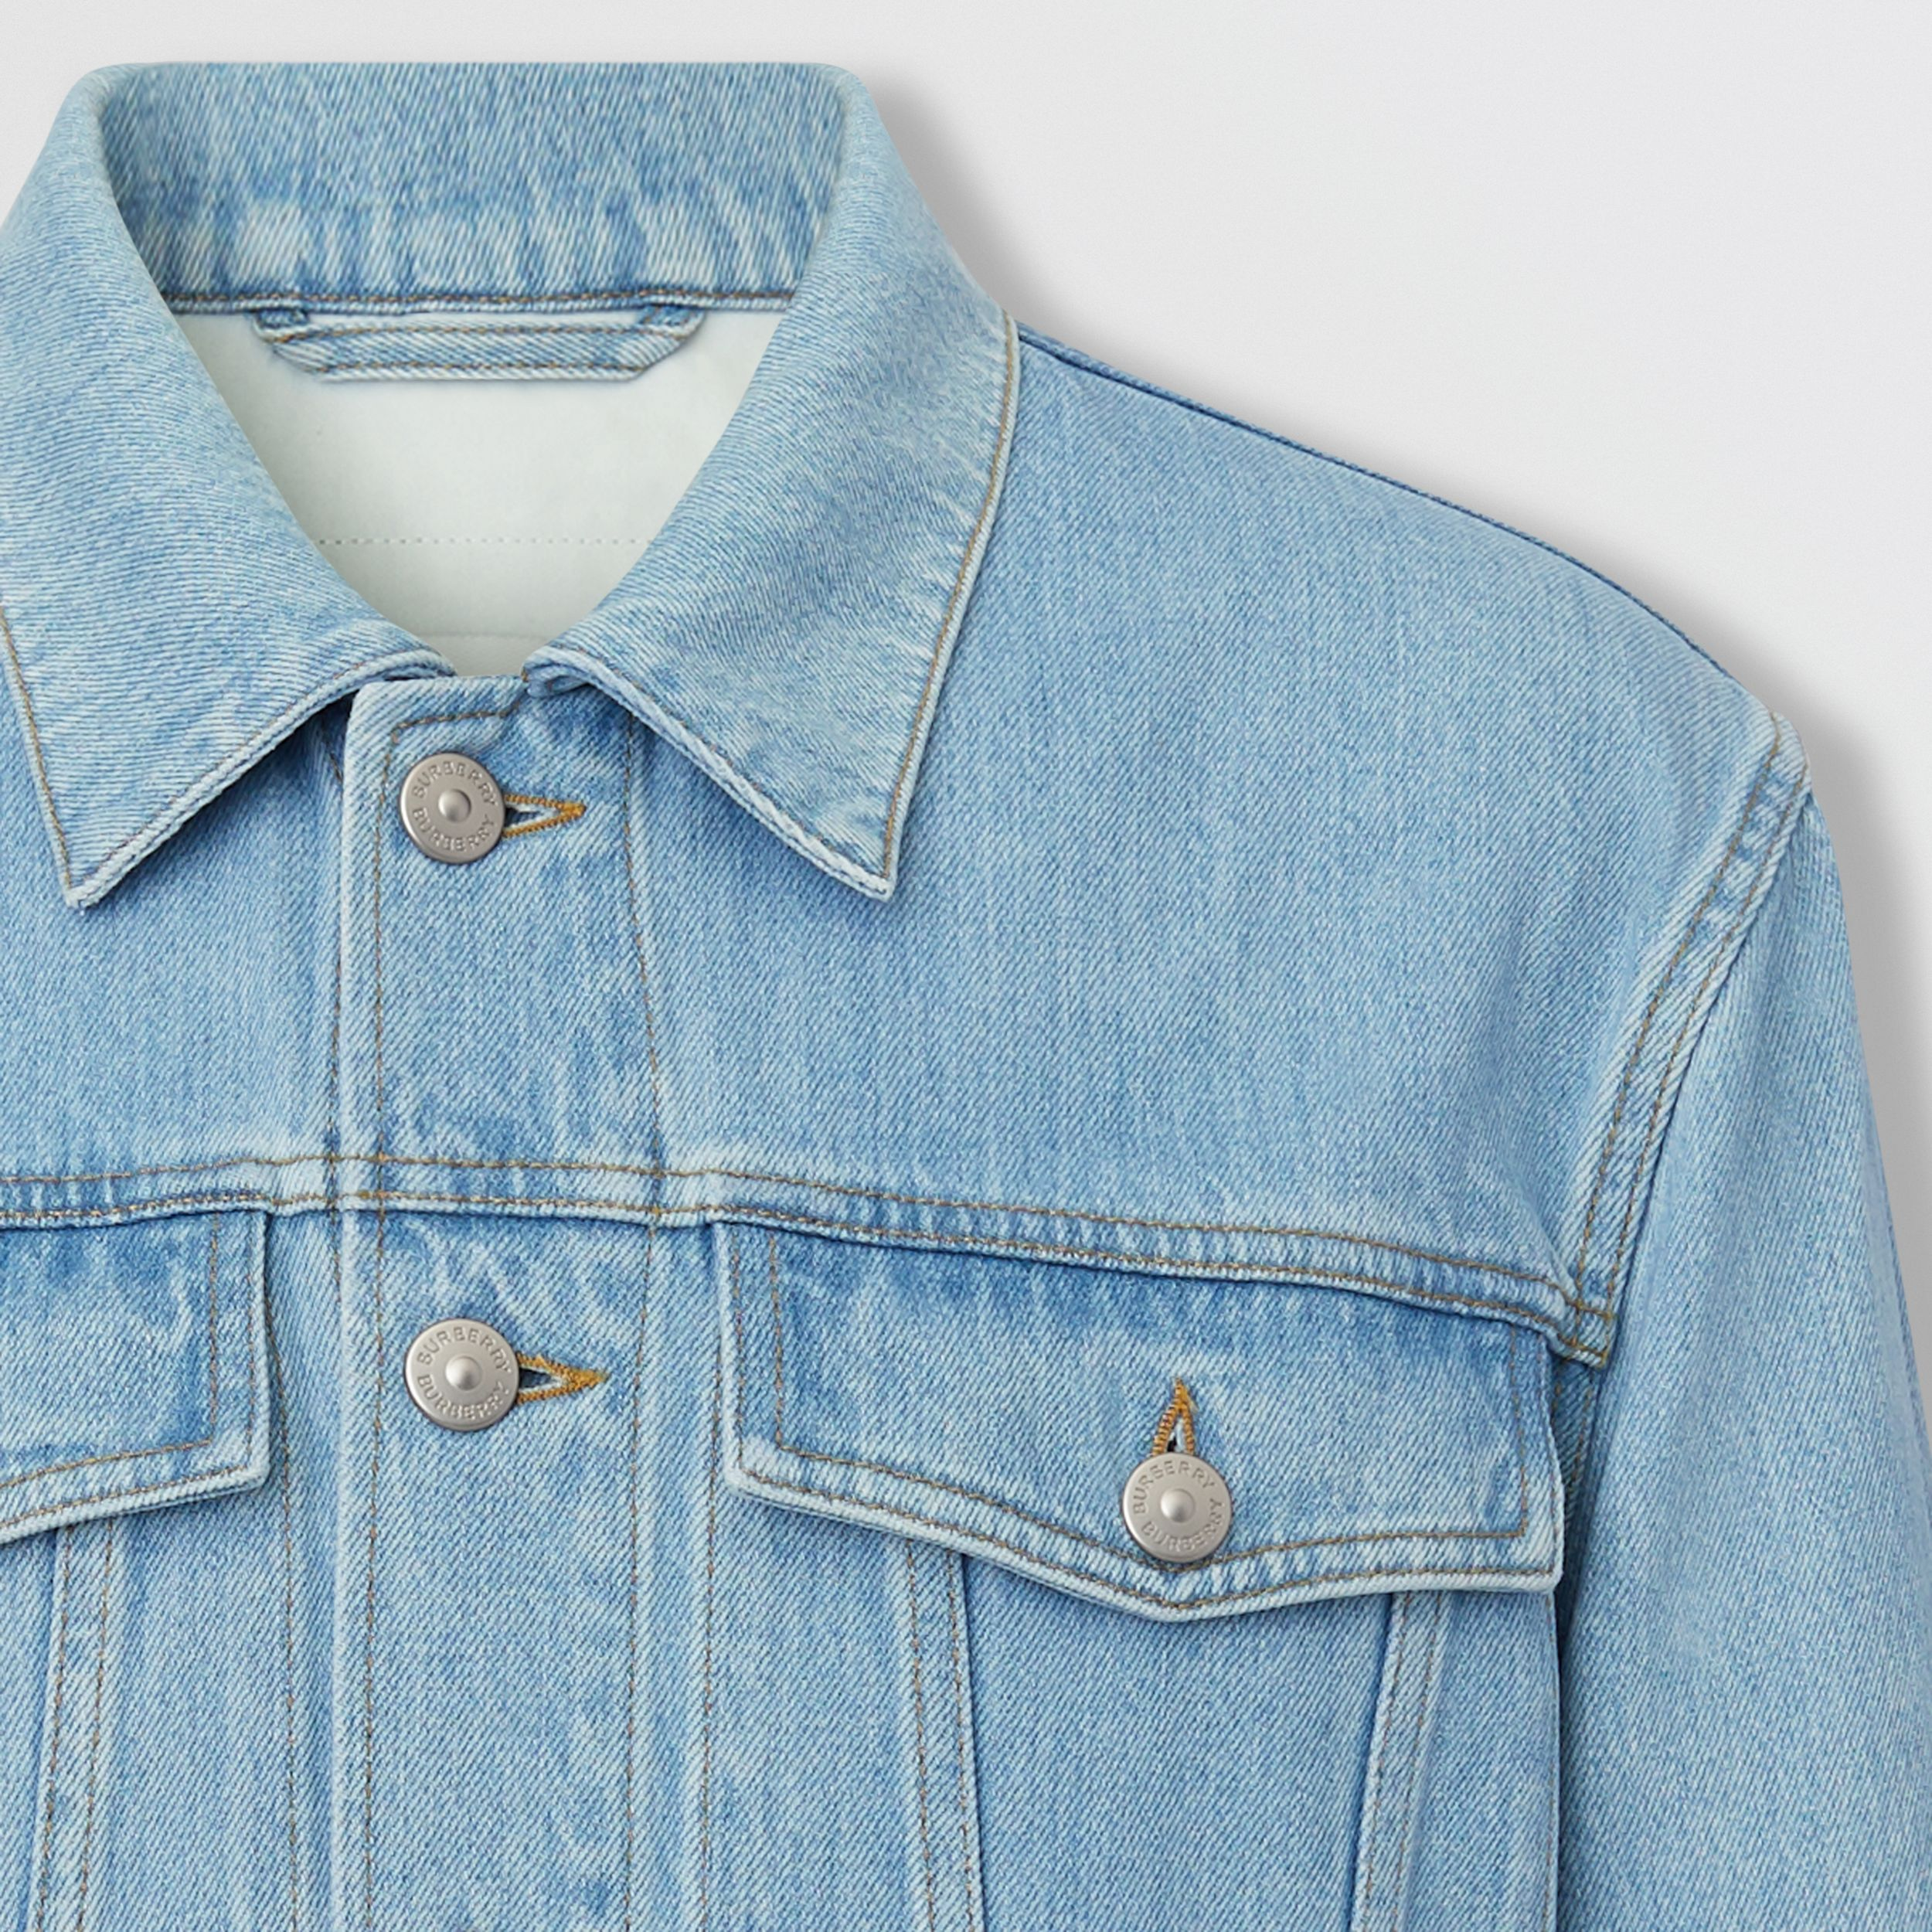 Logo Appliqué Japanese Denim Jacket in Light Indigo Blue - Men | Burberry Australia - 3